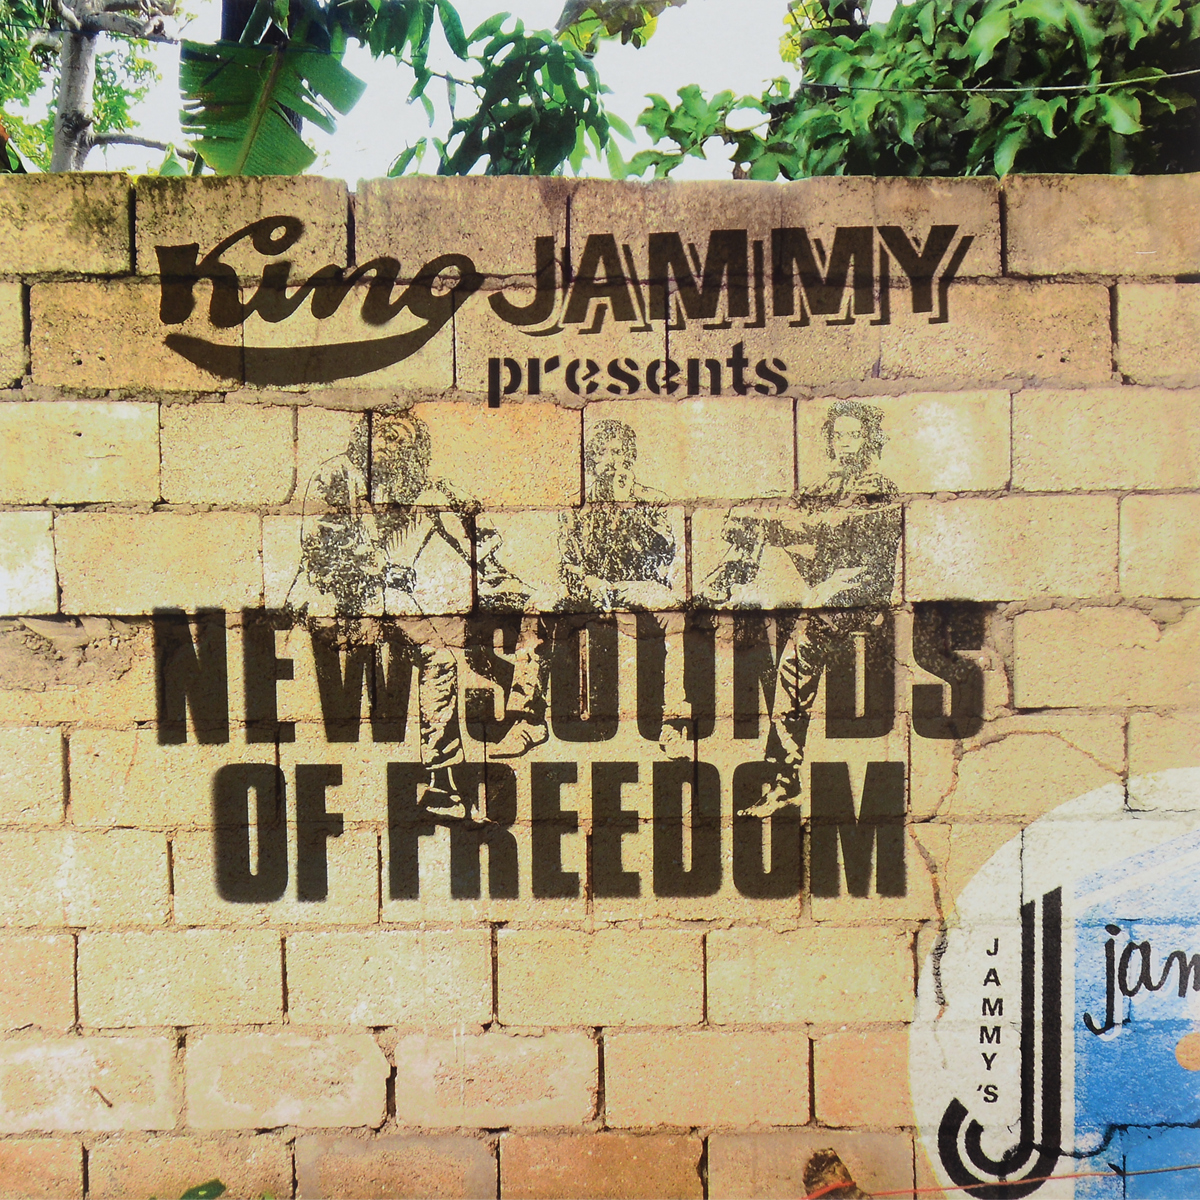 King Jammy Presents New Sounds Of Freedom (LP) freedom freedom black on white lp